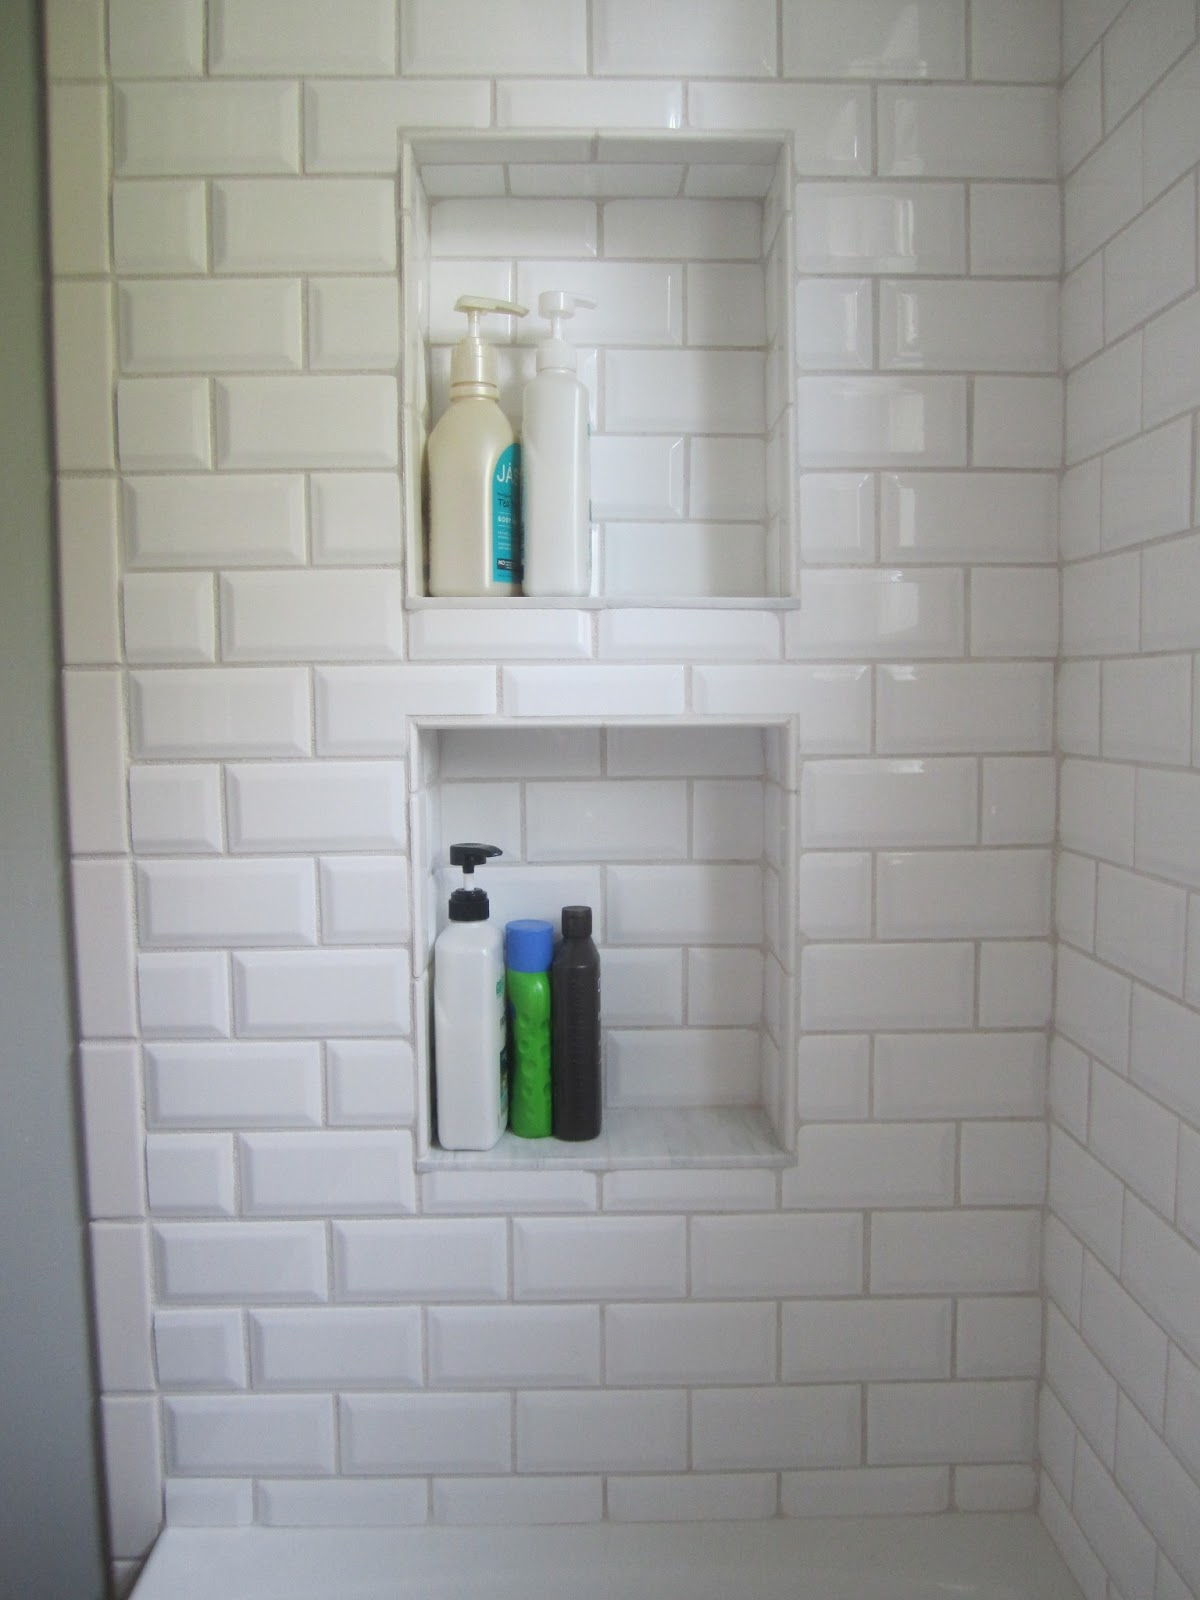 June 2013 courtney scrabeck How to tile a shower